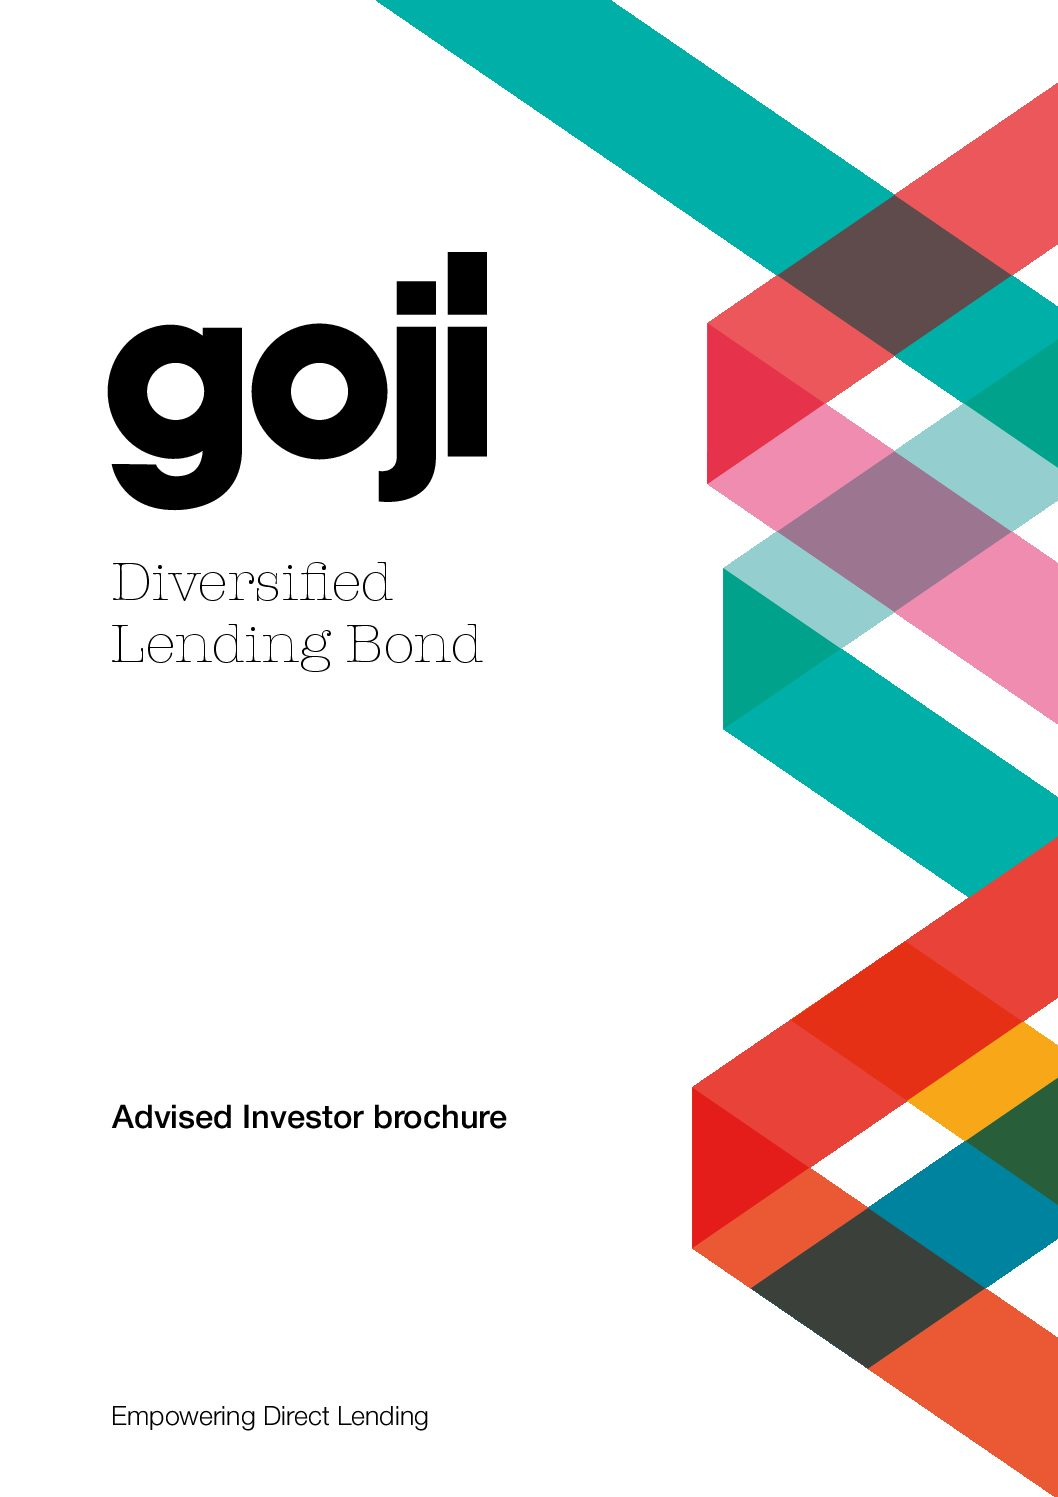 Diversified Lending Bond client brochure-Goji Direct Lending Investment Experts